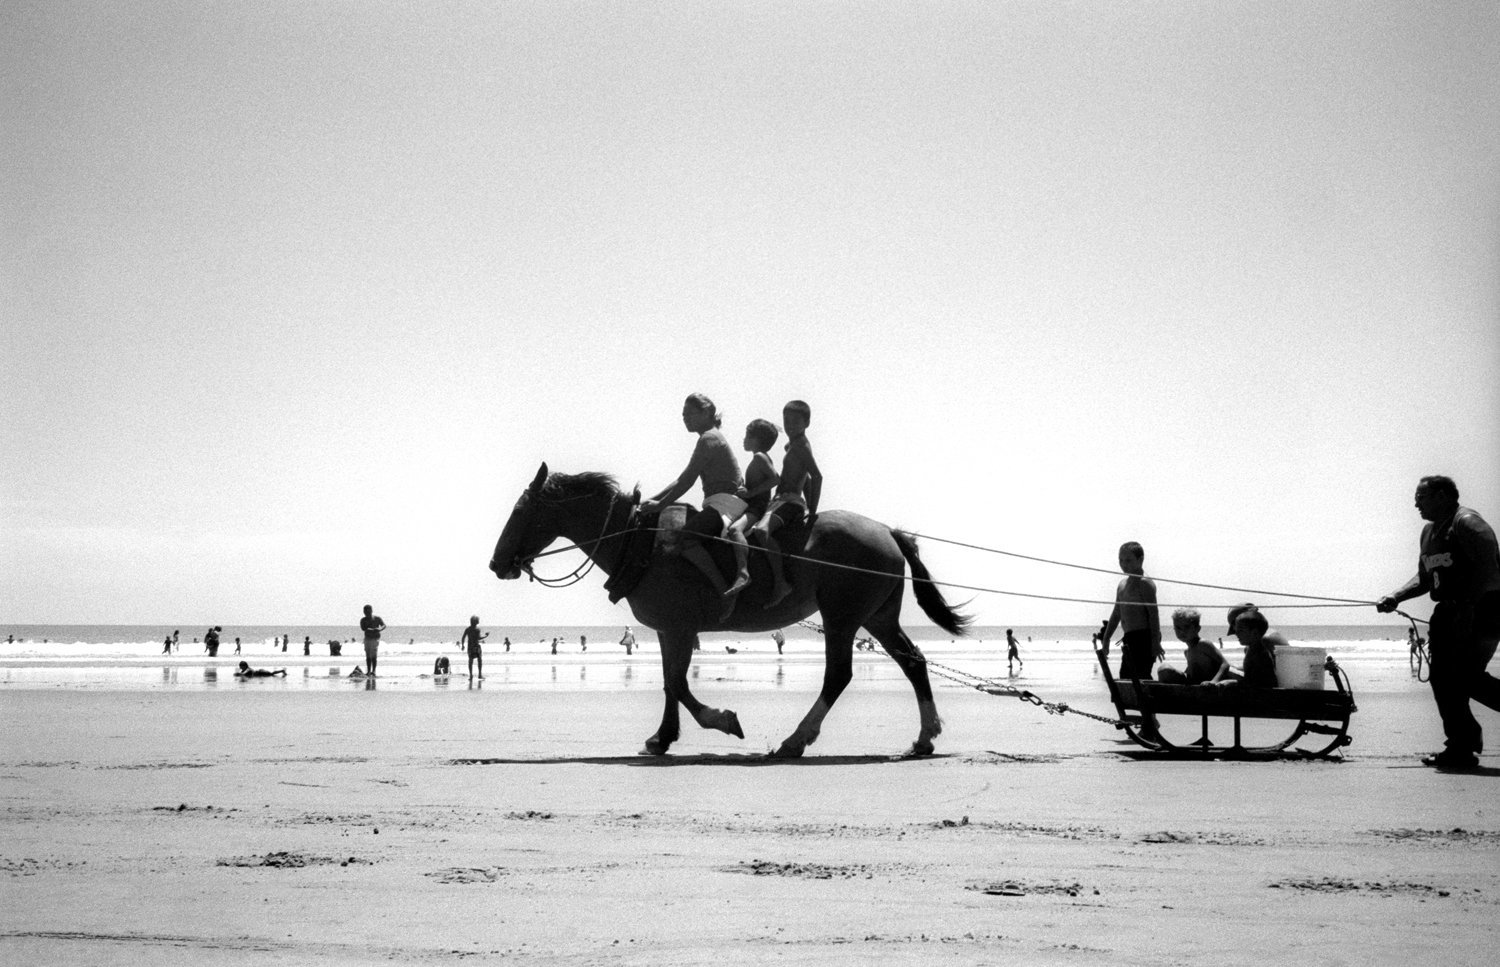 © Tamara Voninski. Ahipara, New Zealand. Maori children ride a horse and sleigh across the sand at the southern end of Ninety Mile Beach at Ahipara (North Island)  New Zealand. In Maori legend, the spirits of the dead depart the earth along this beach.  The New Zealand government had proposed laws to prevent Maori from claiming ownership of the coastline and seabed in New Zealand.